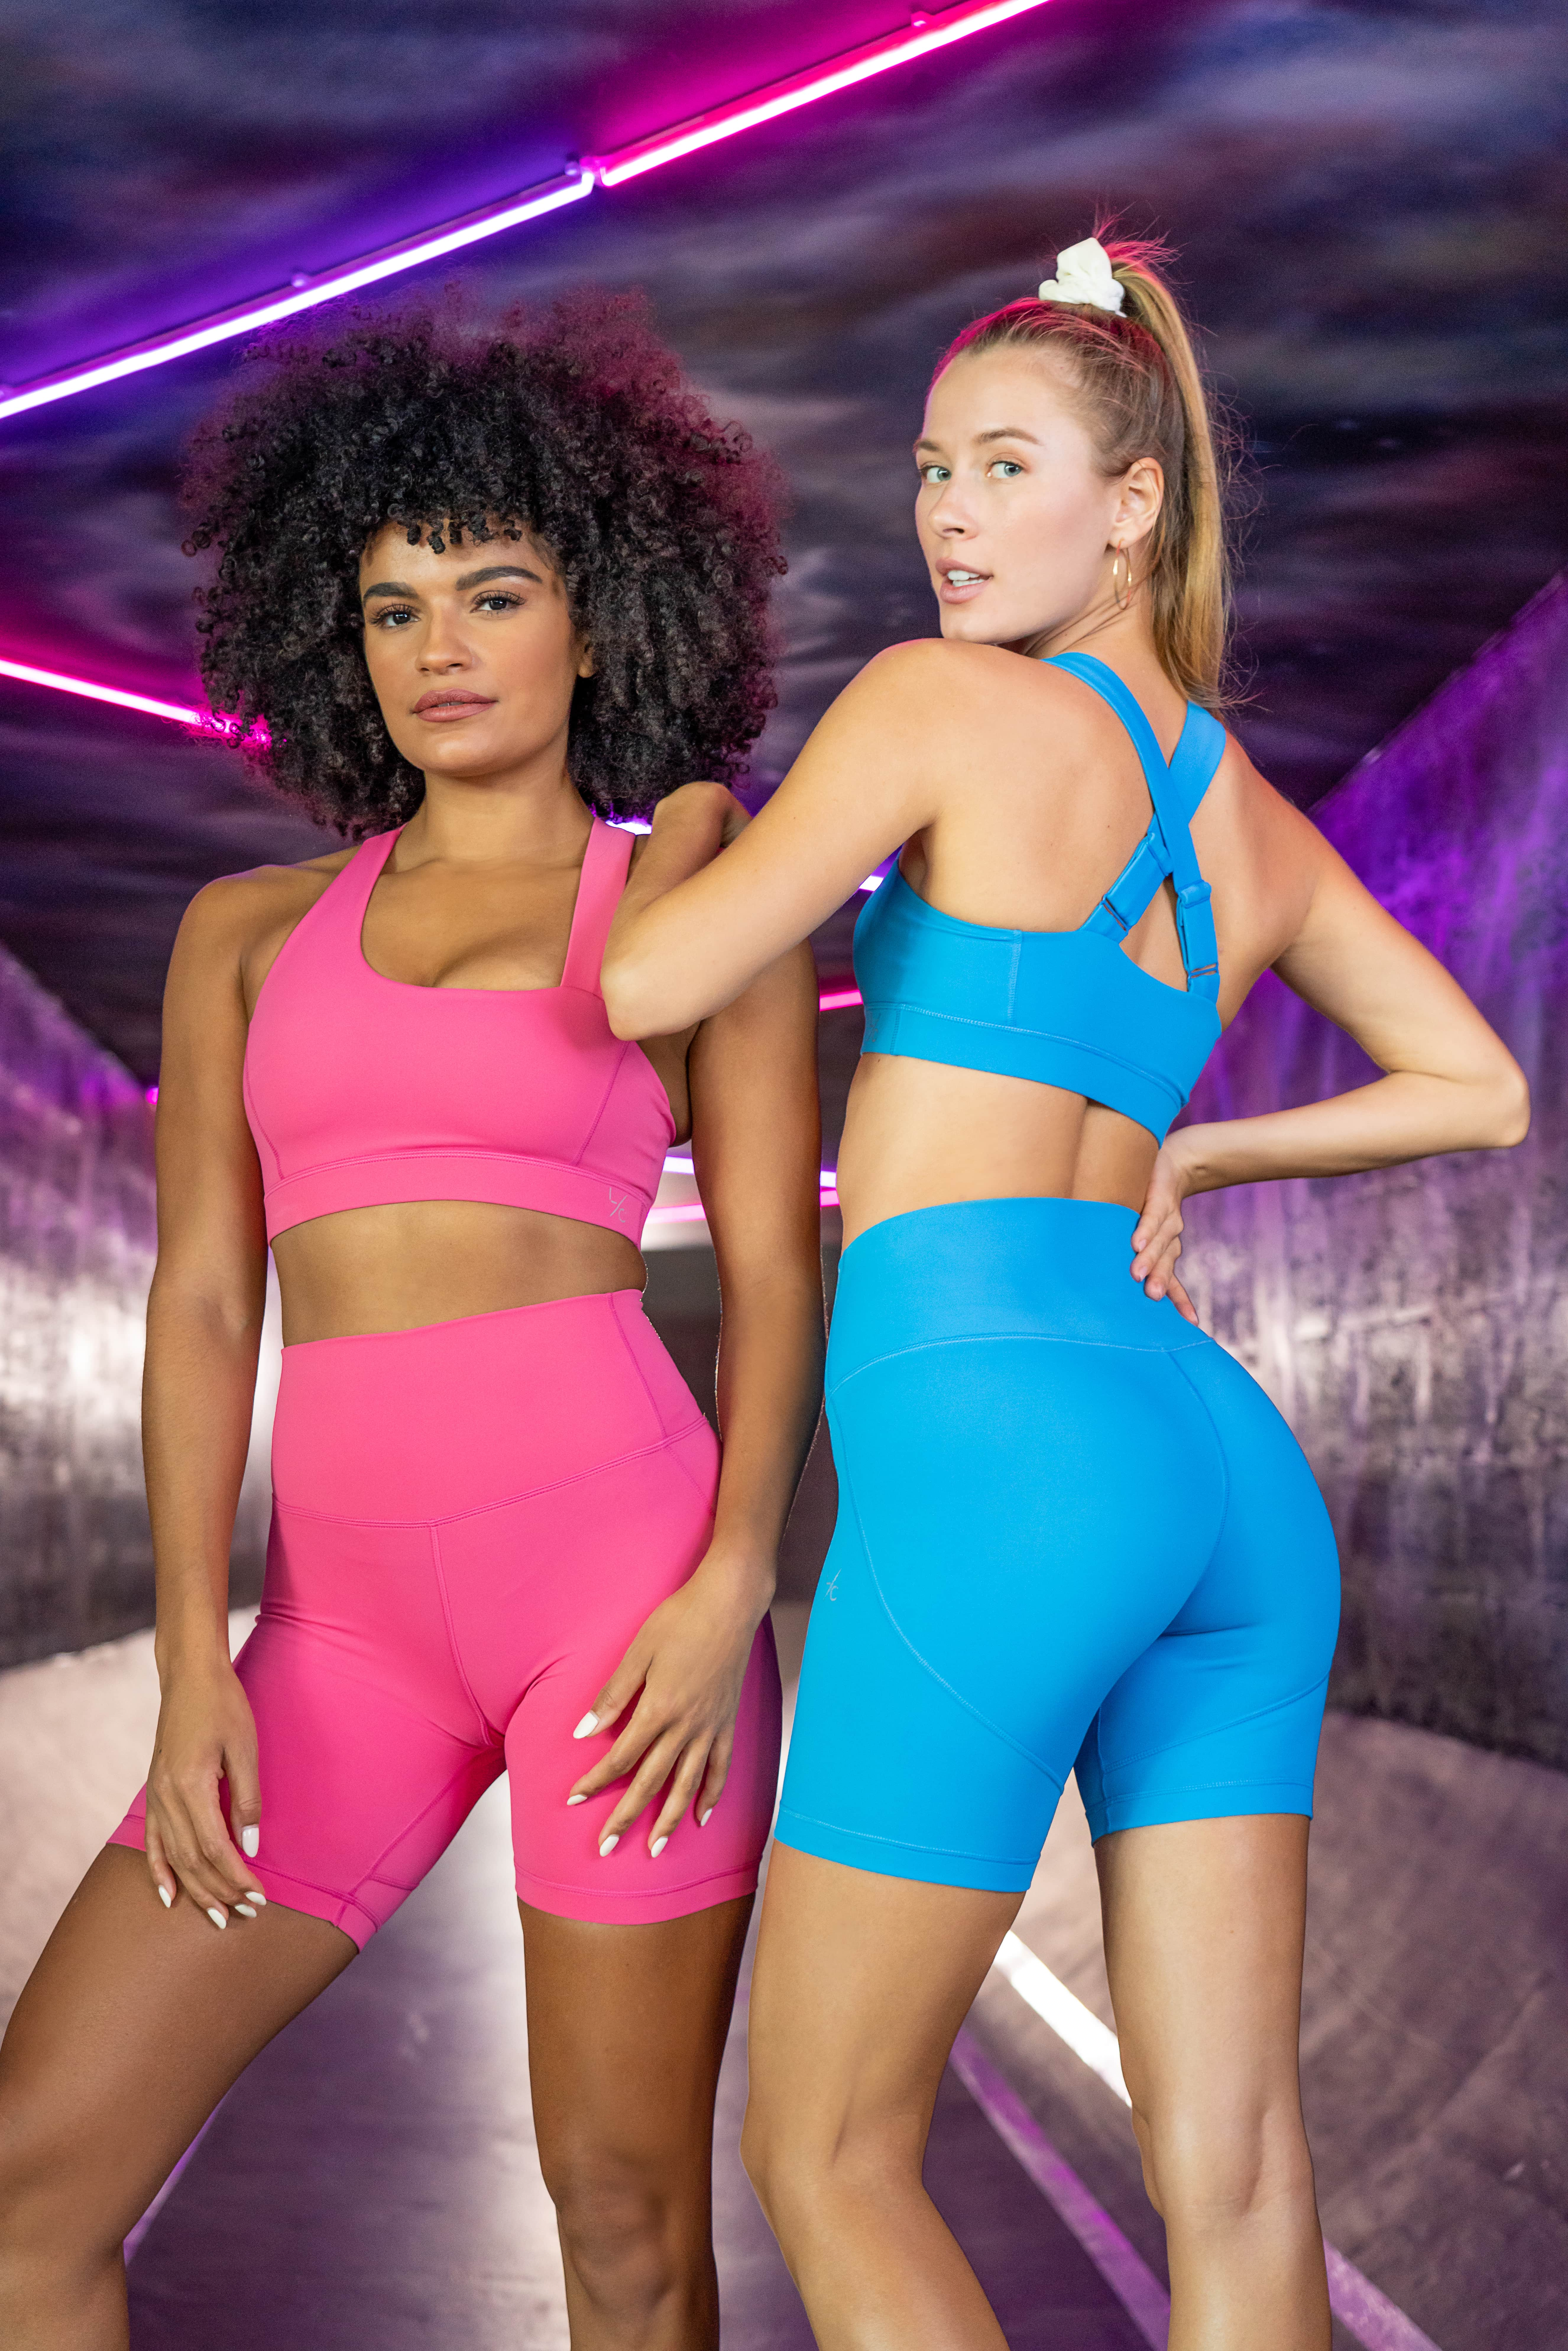 L'Couture Energy Will Get You Excited About Going To The Gym; Two women, one in pink and one in blue.